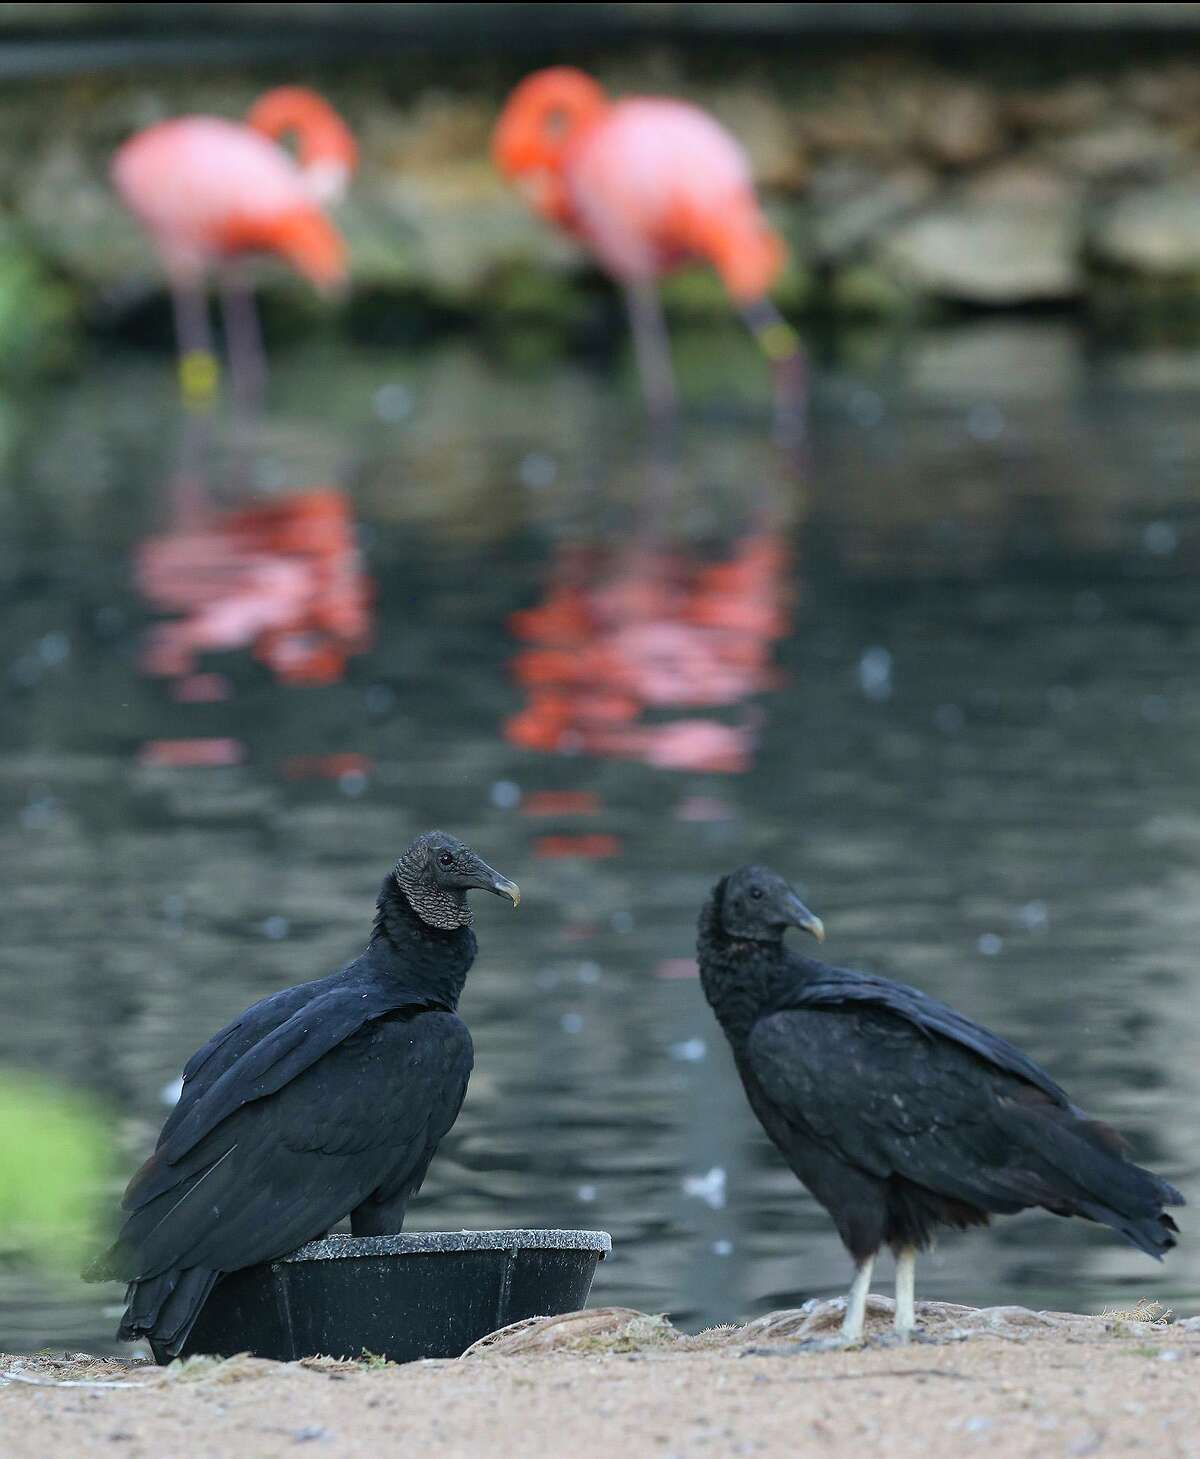 Black vultures at the San Antonio Zoo sit by water. In the background are two pink flamingos.